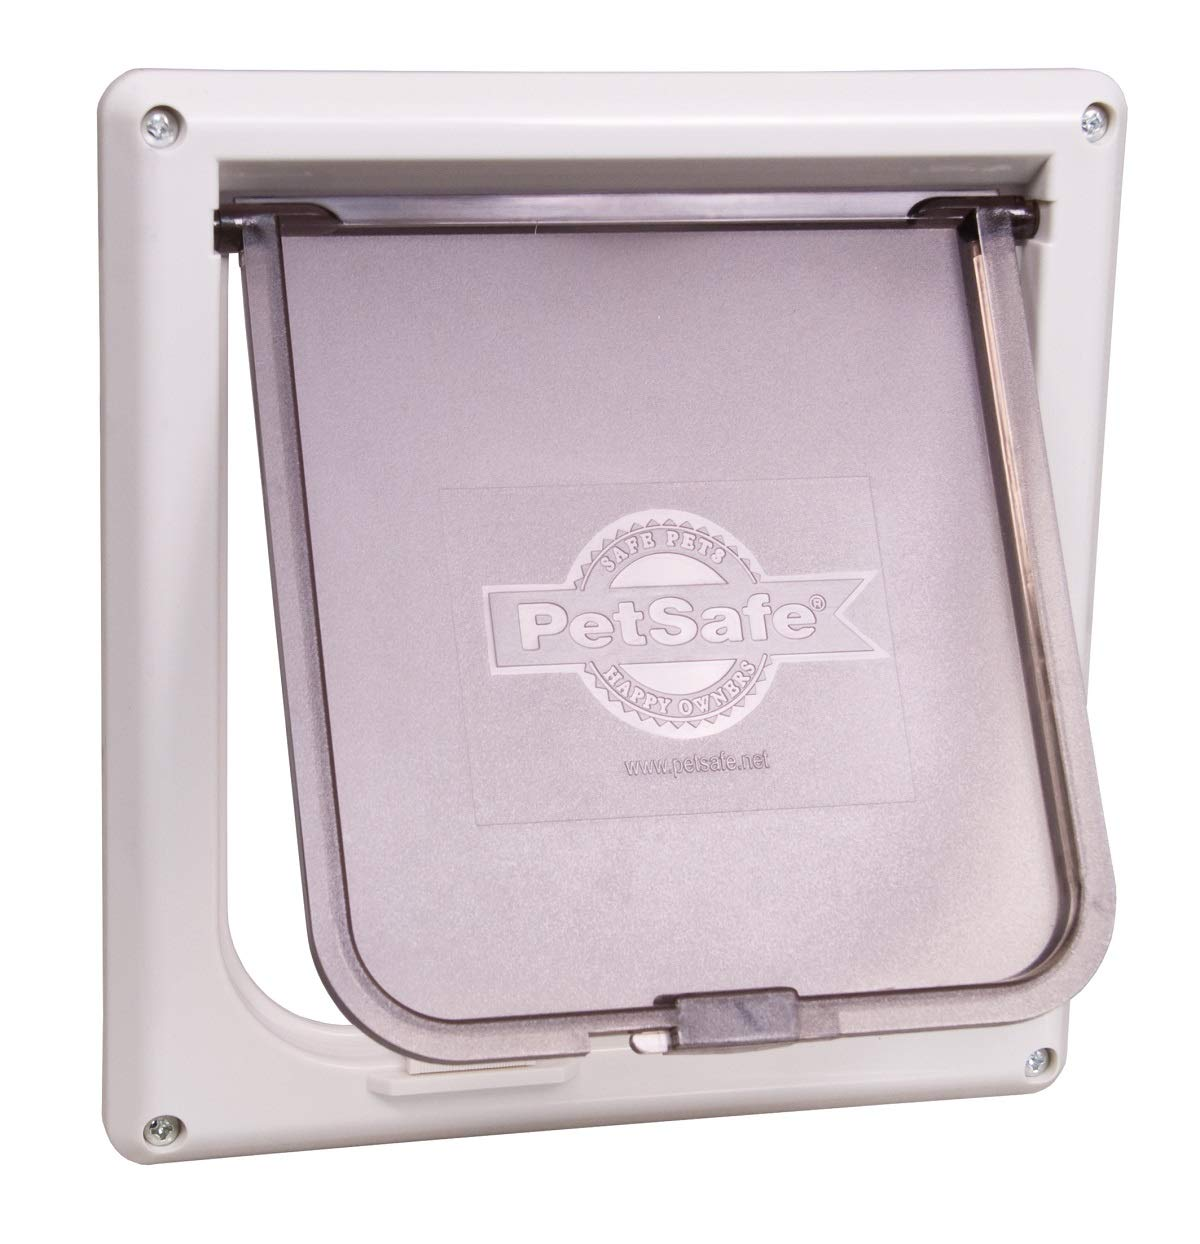 PetSafe Interior 2-Way Locking Cat Door, White product image